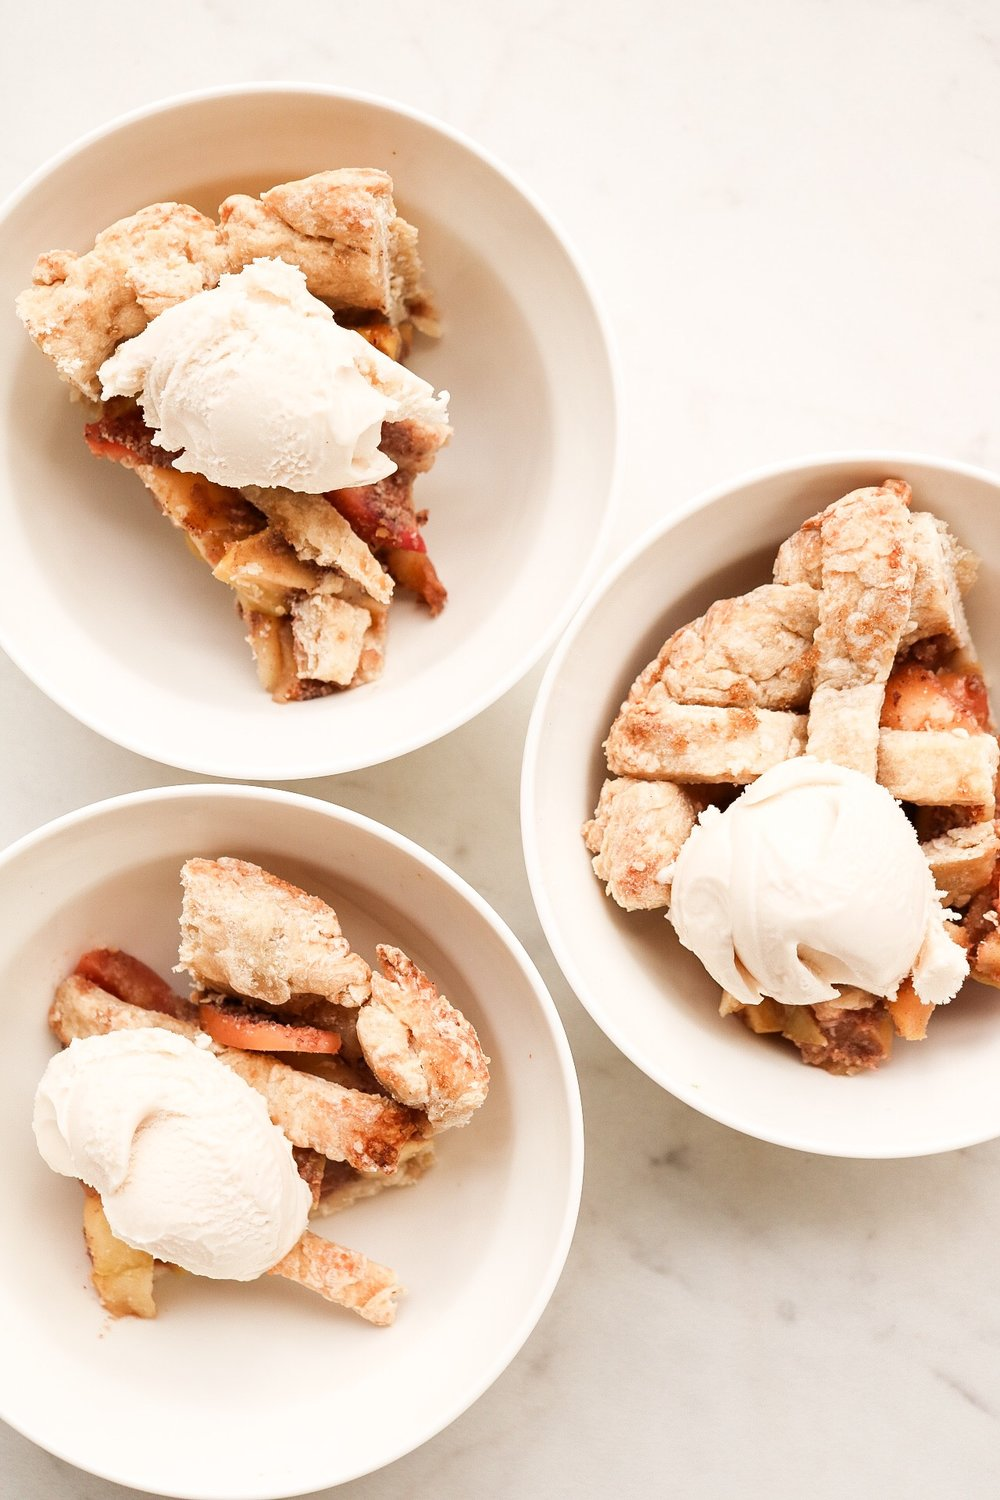 Golden and buttery, it's best served with a big scoop of vanilla ice cream - promise!